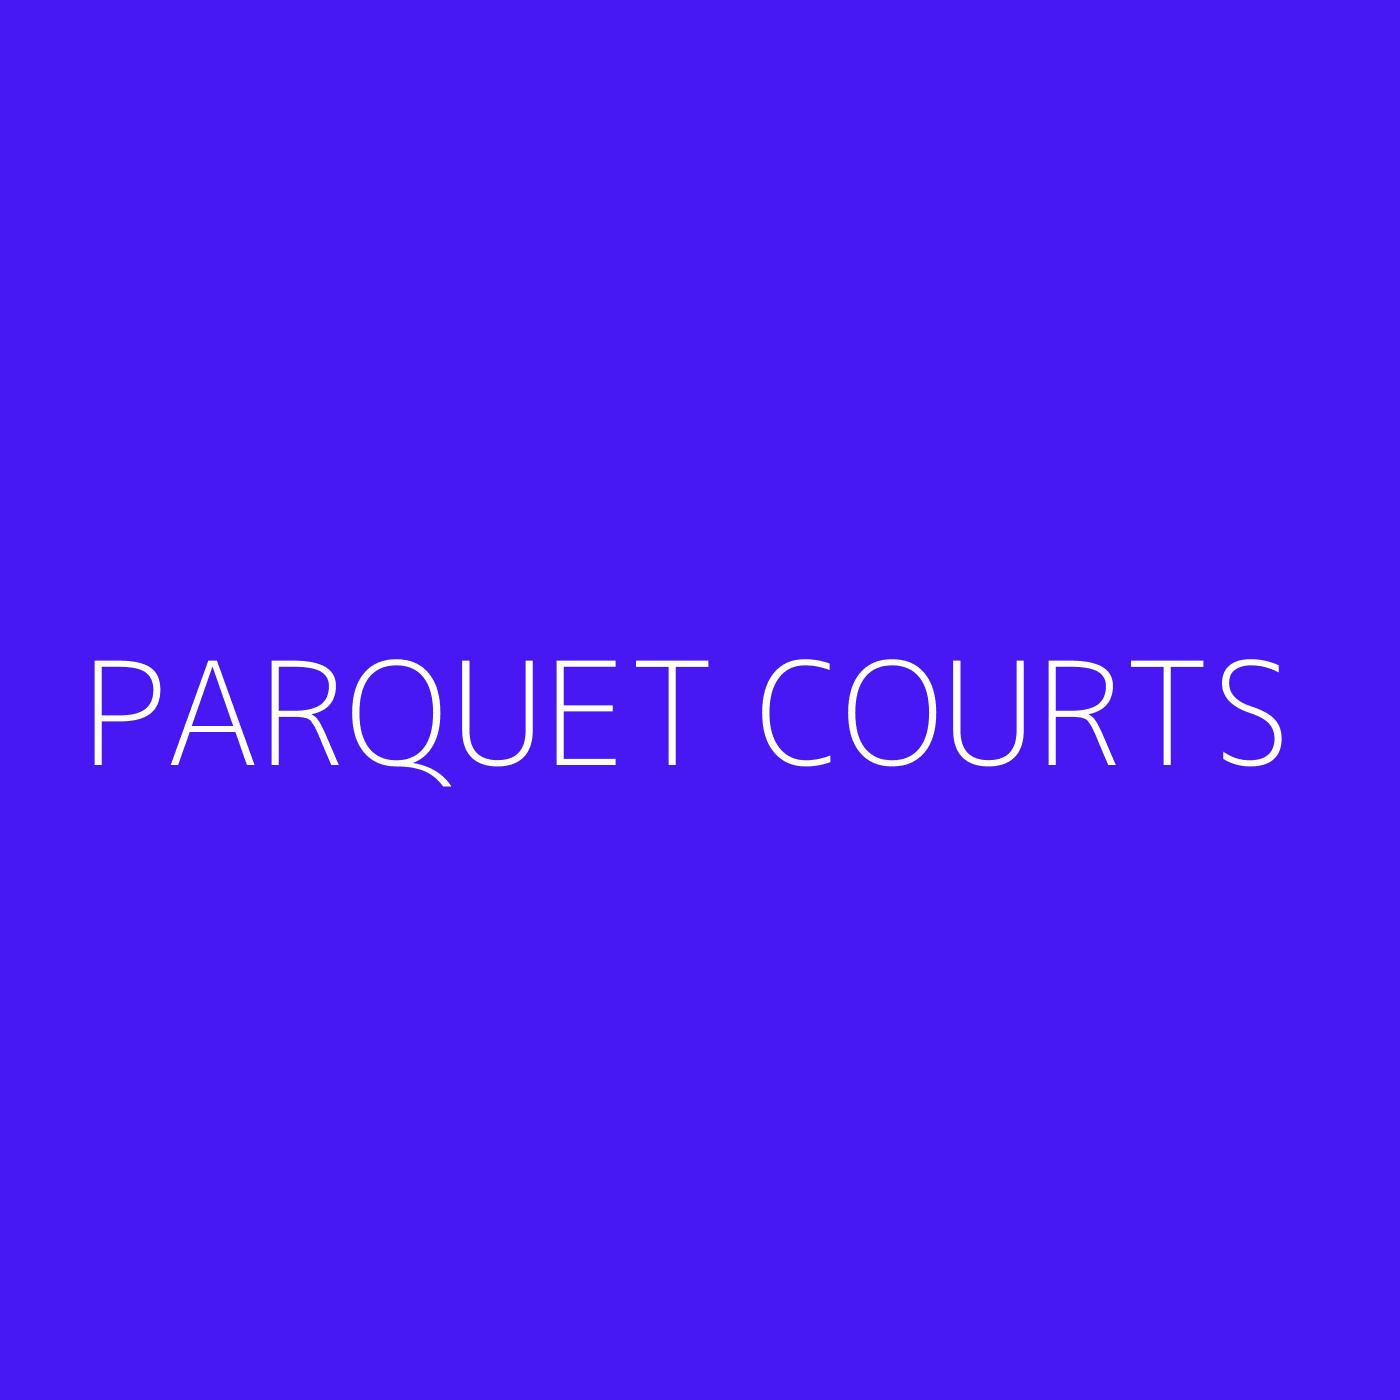 Parquet Courts Playlist Artwork